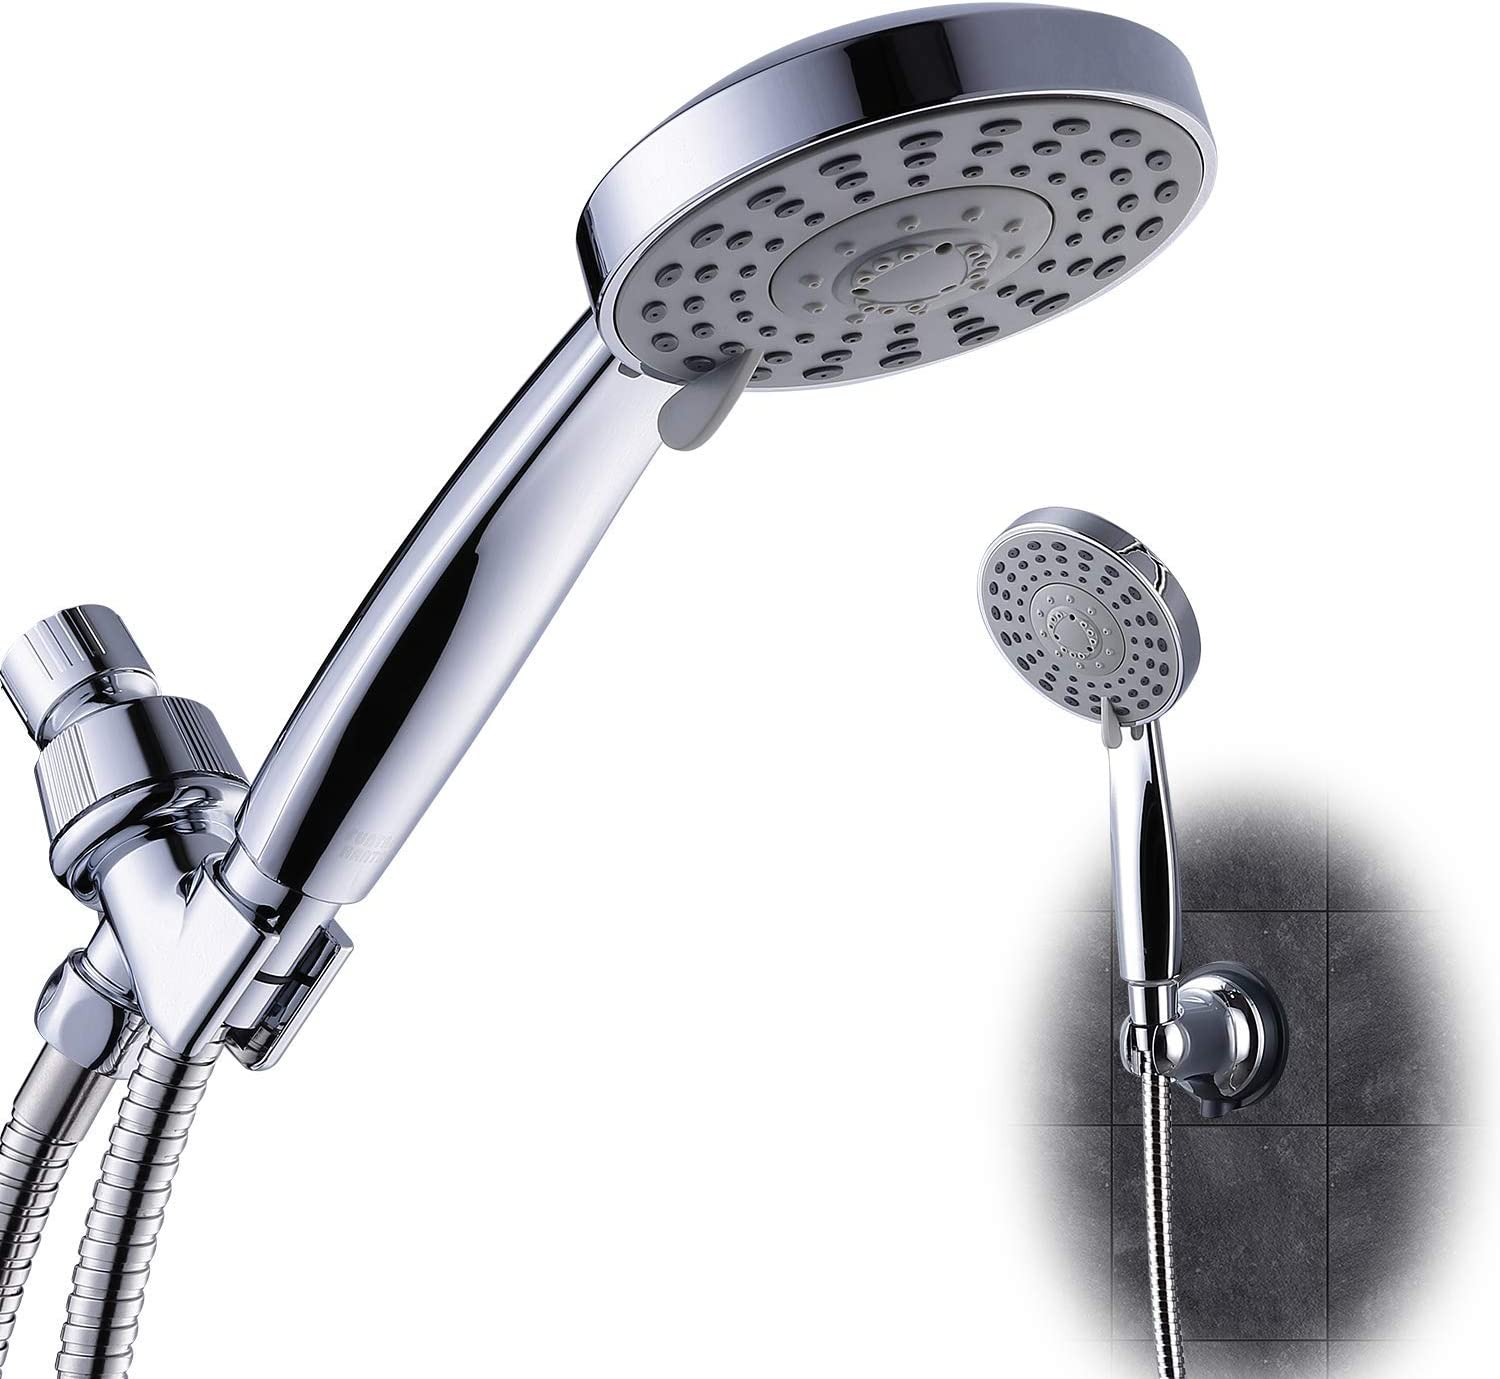 High Pressure Multi Function Handheld Shower Head Powerful Rainfall 5 Sprays Settings Showerhead With Stainless Hose And Bracket With Extra Suction Holder Funtaphanta For A Better Shower Experience Amazon Com